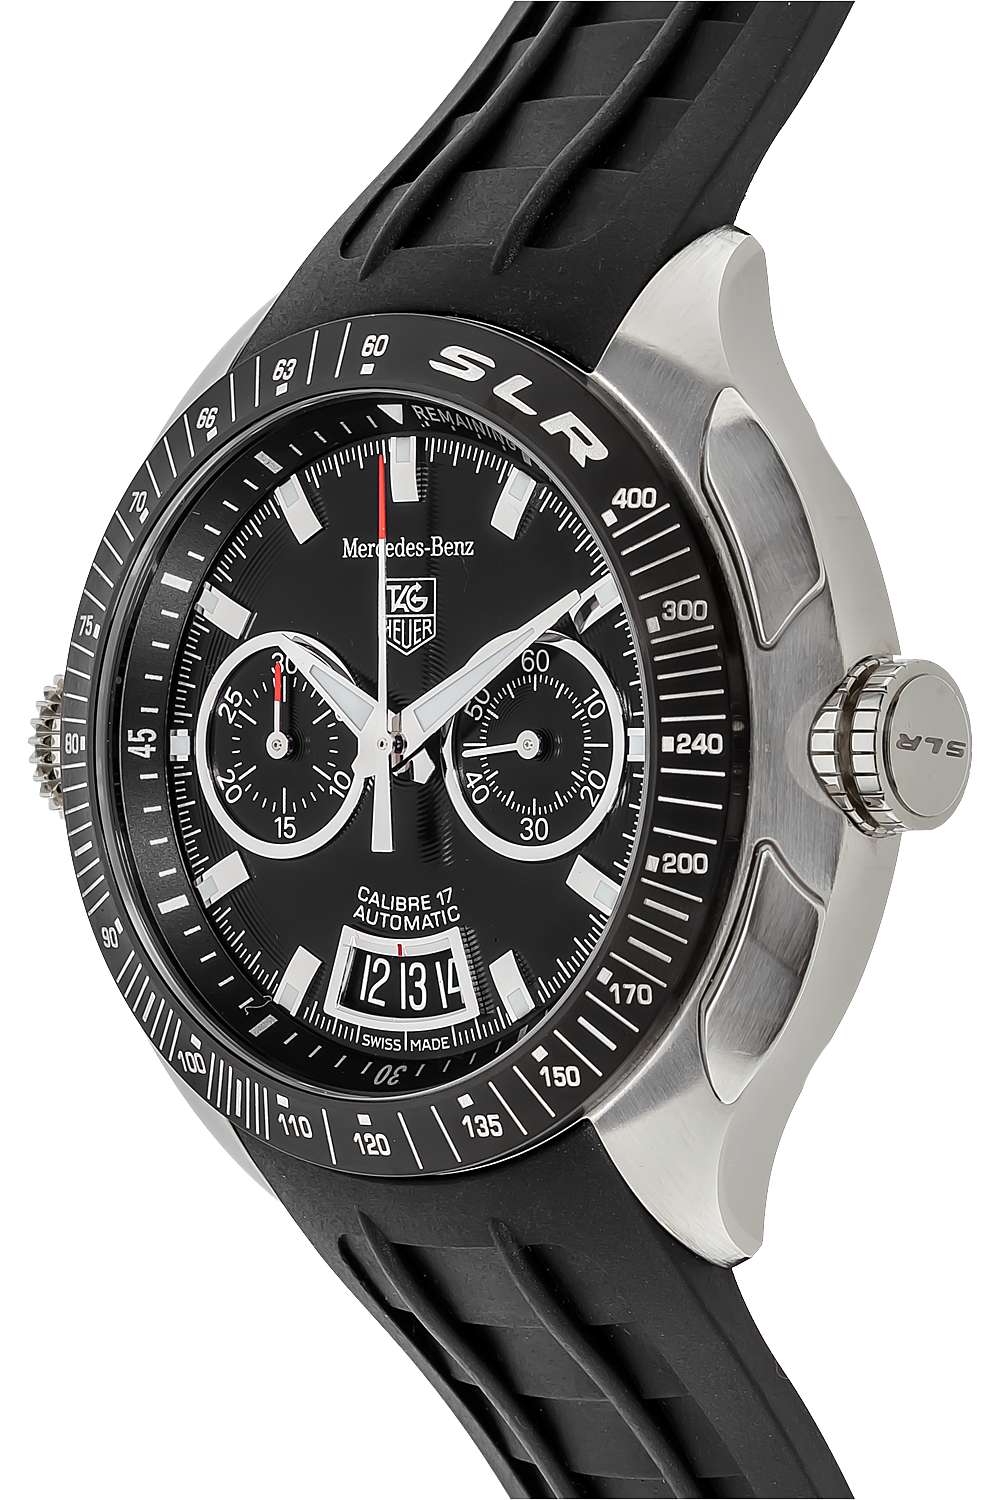 Pre owned tag heuer mercedes benz slr chronograph for Tag heuer mercedes benz slr